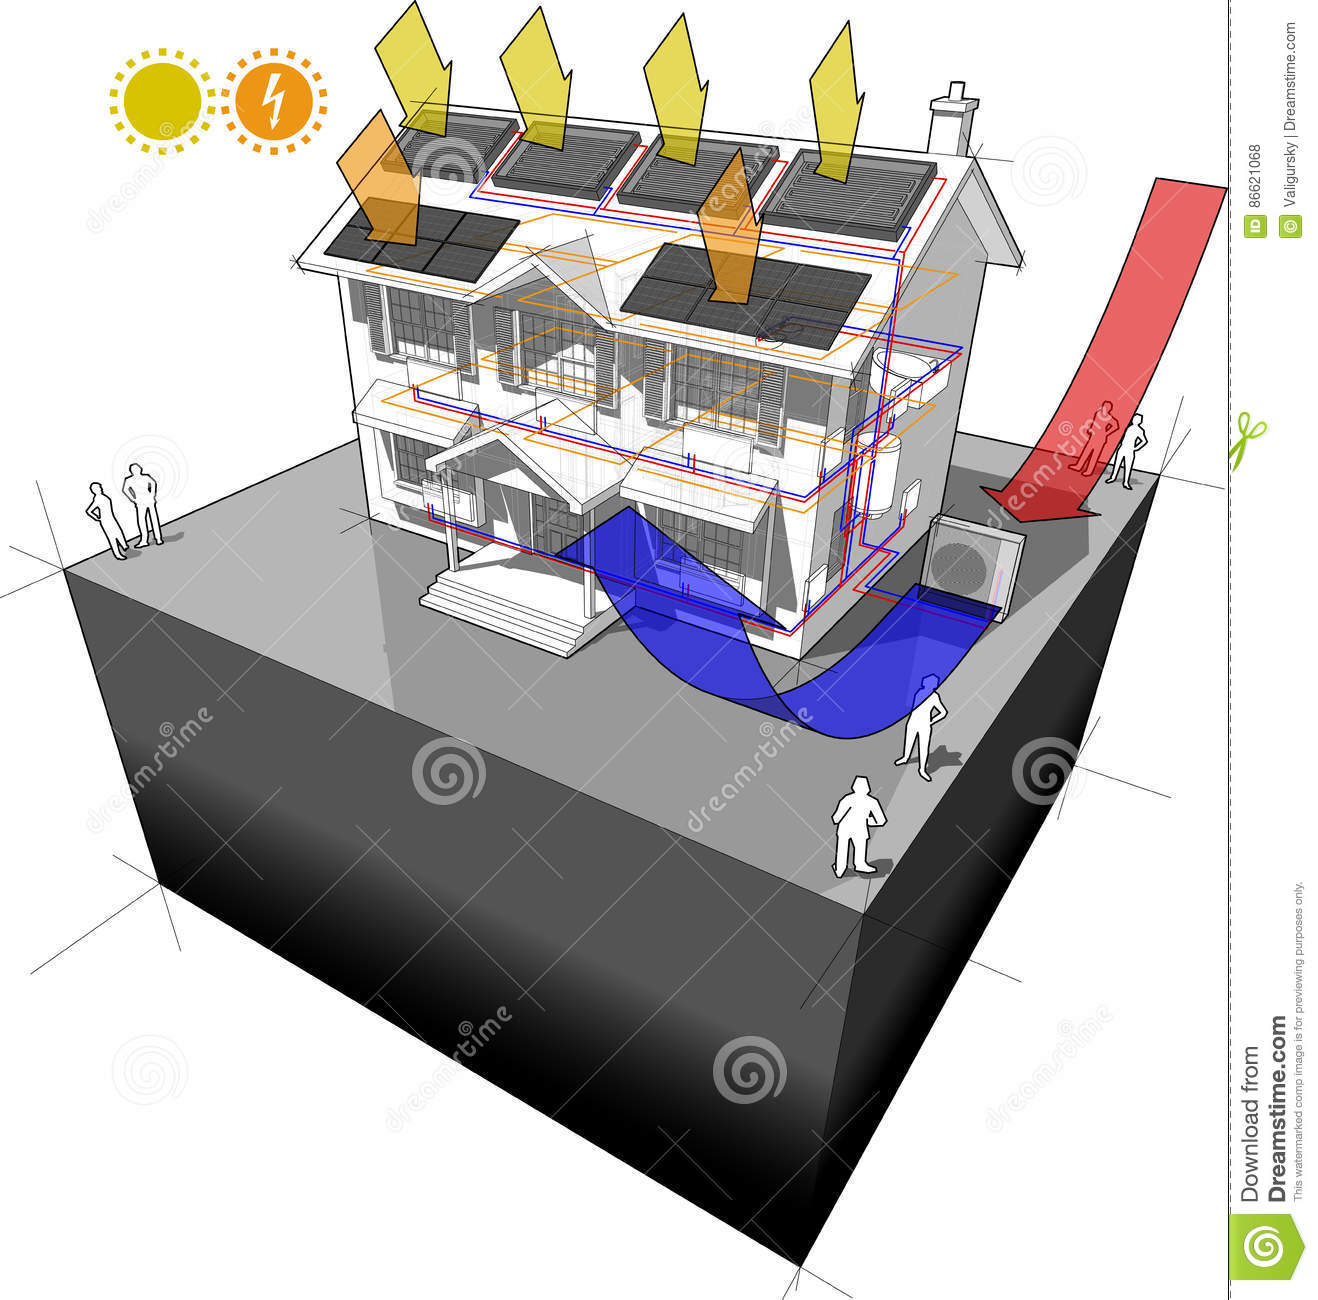 hight resolution of diagram of a classic colonial house with air source heat pump and solar water heater on the roof as source of energy for heating to radiators and